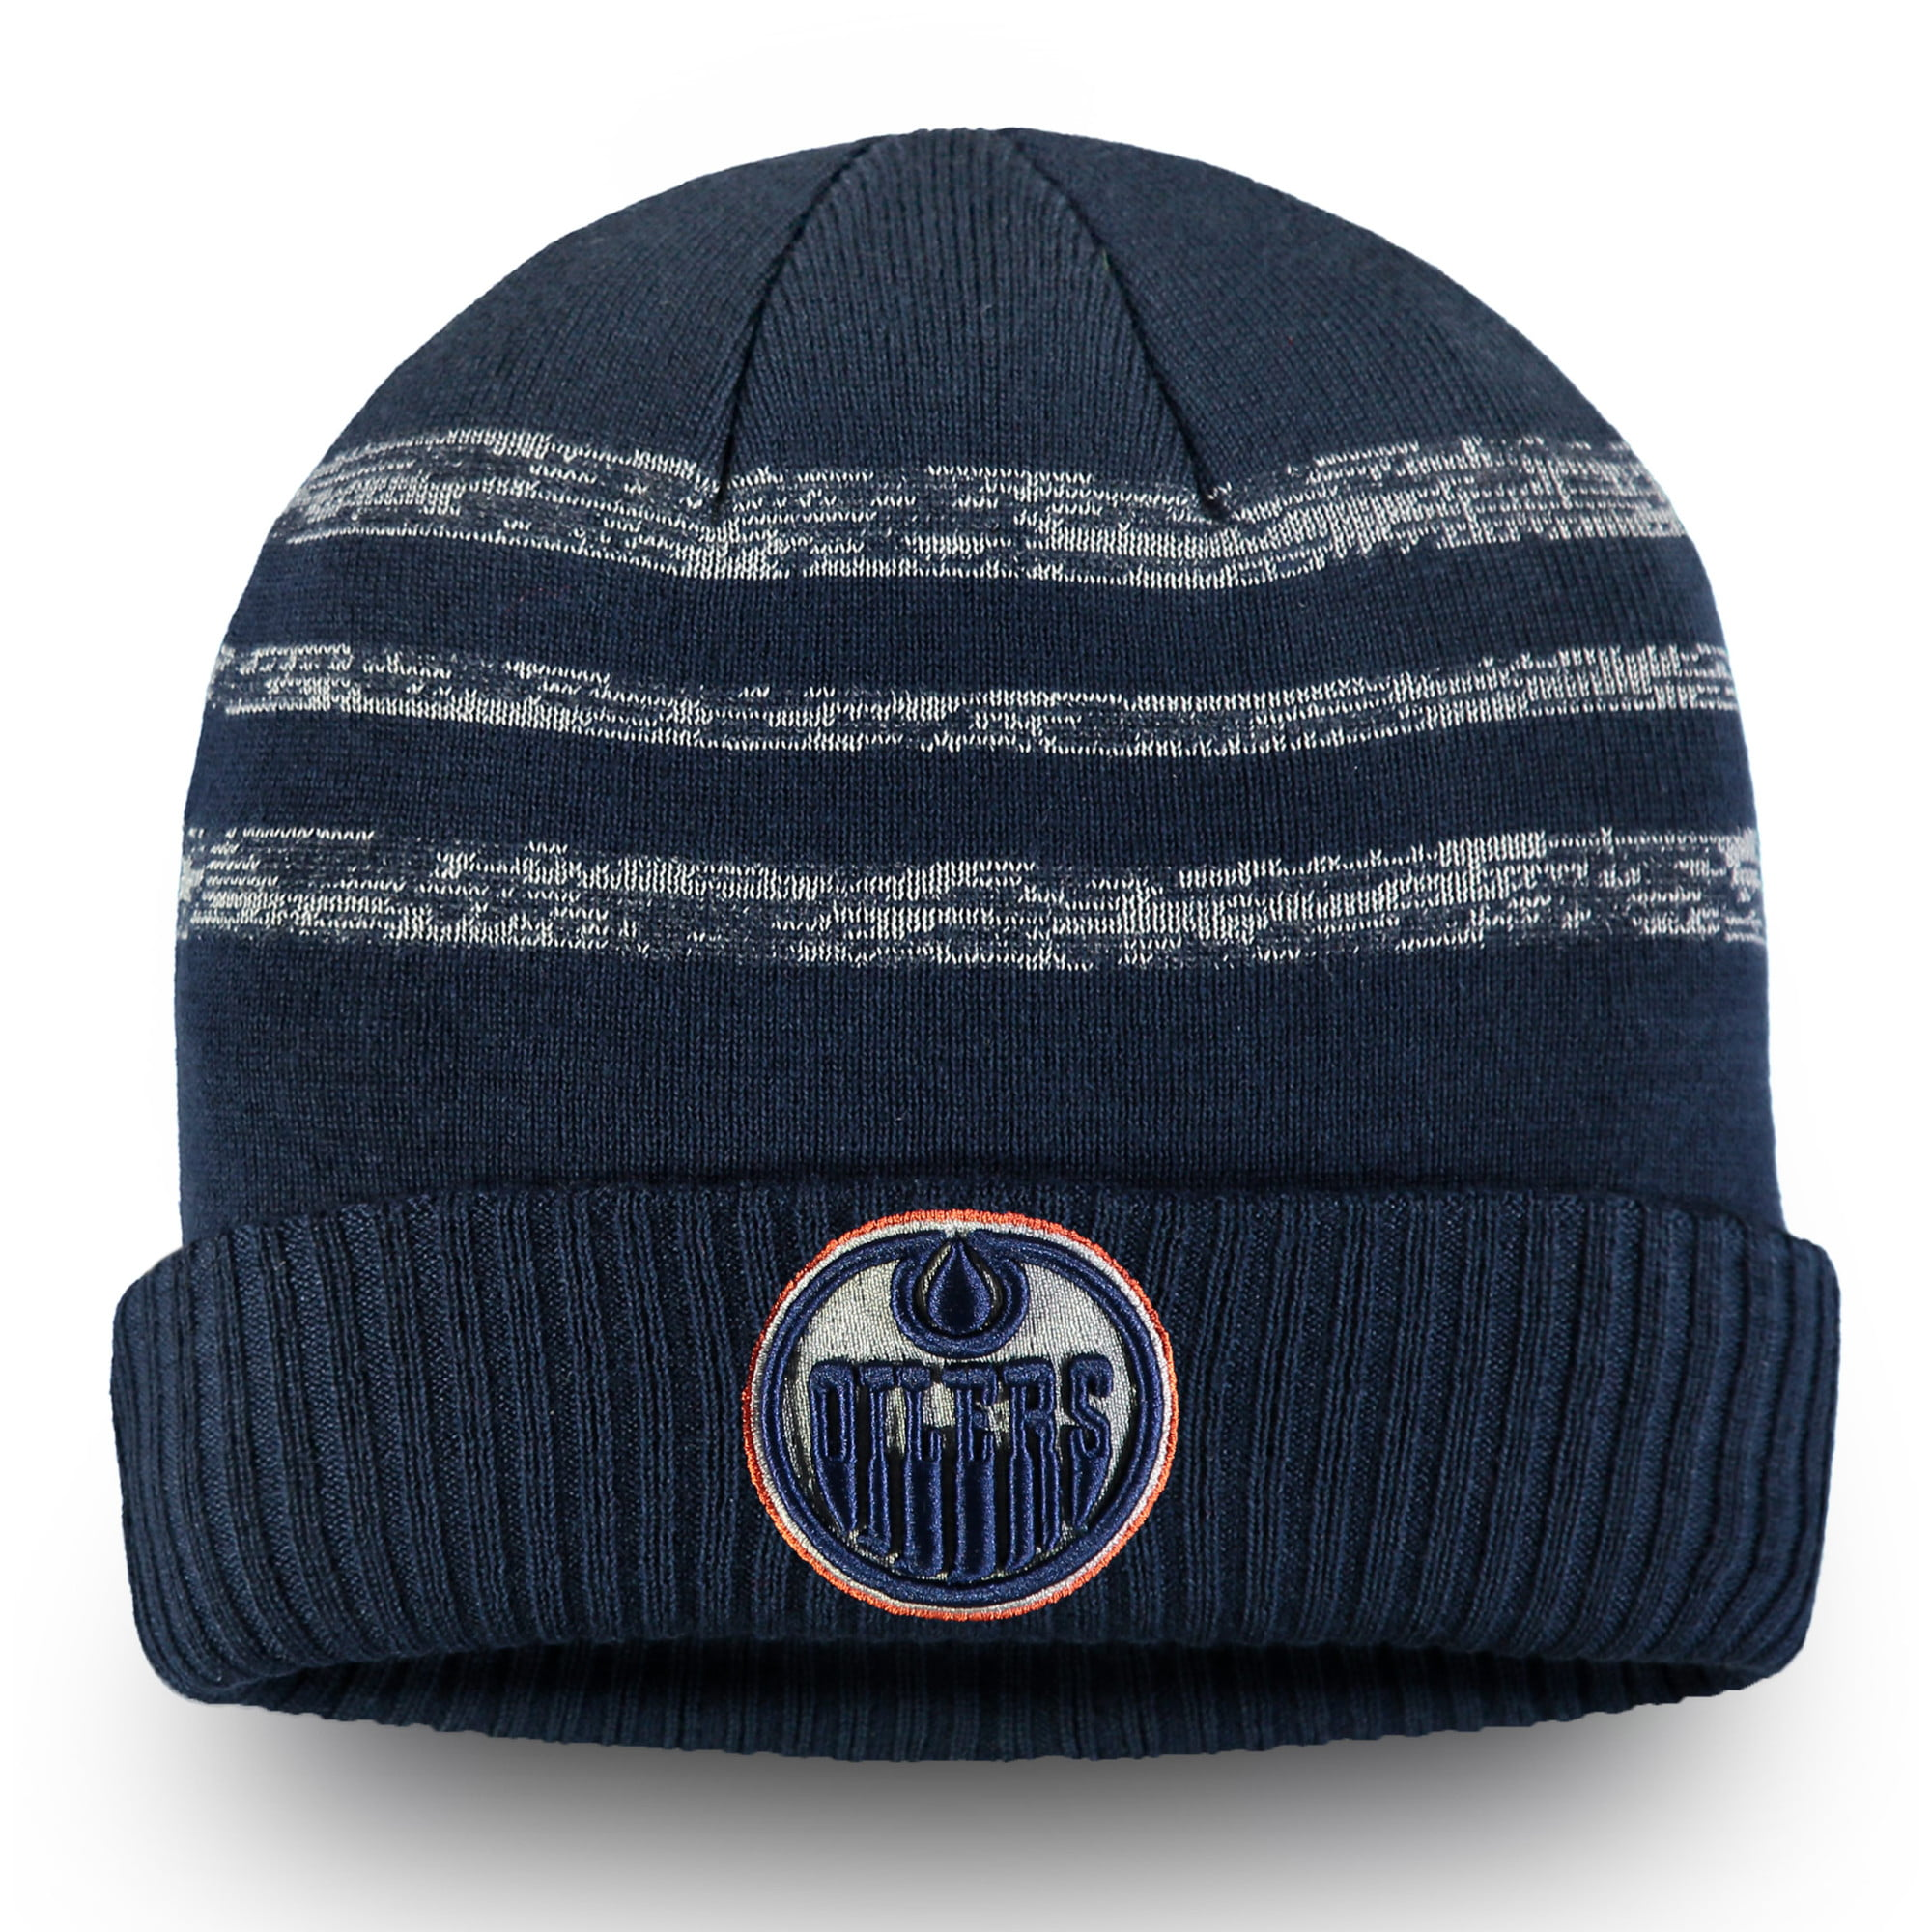 6690e38b9 Edmonton Oilers Fanatics Branded Authentic Pro Clutch Cuffed Knit Hat -  Navy - OSFA - Walmart.com